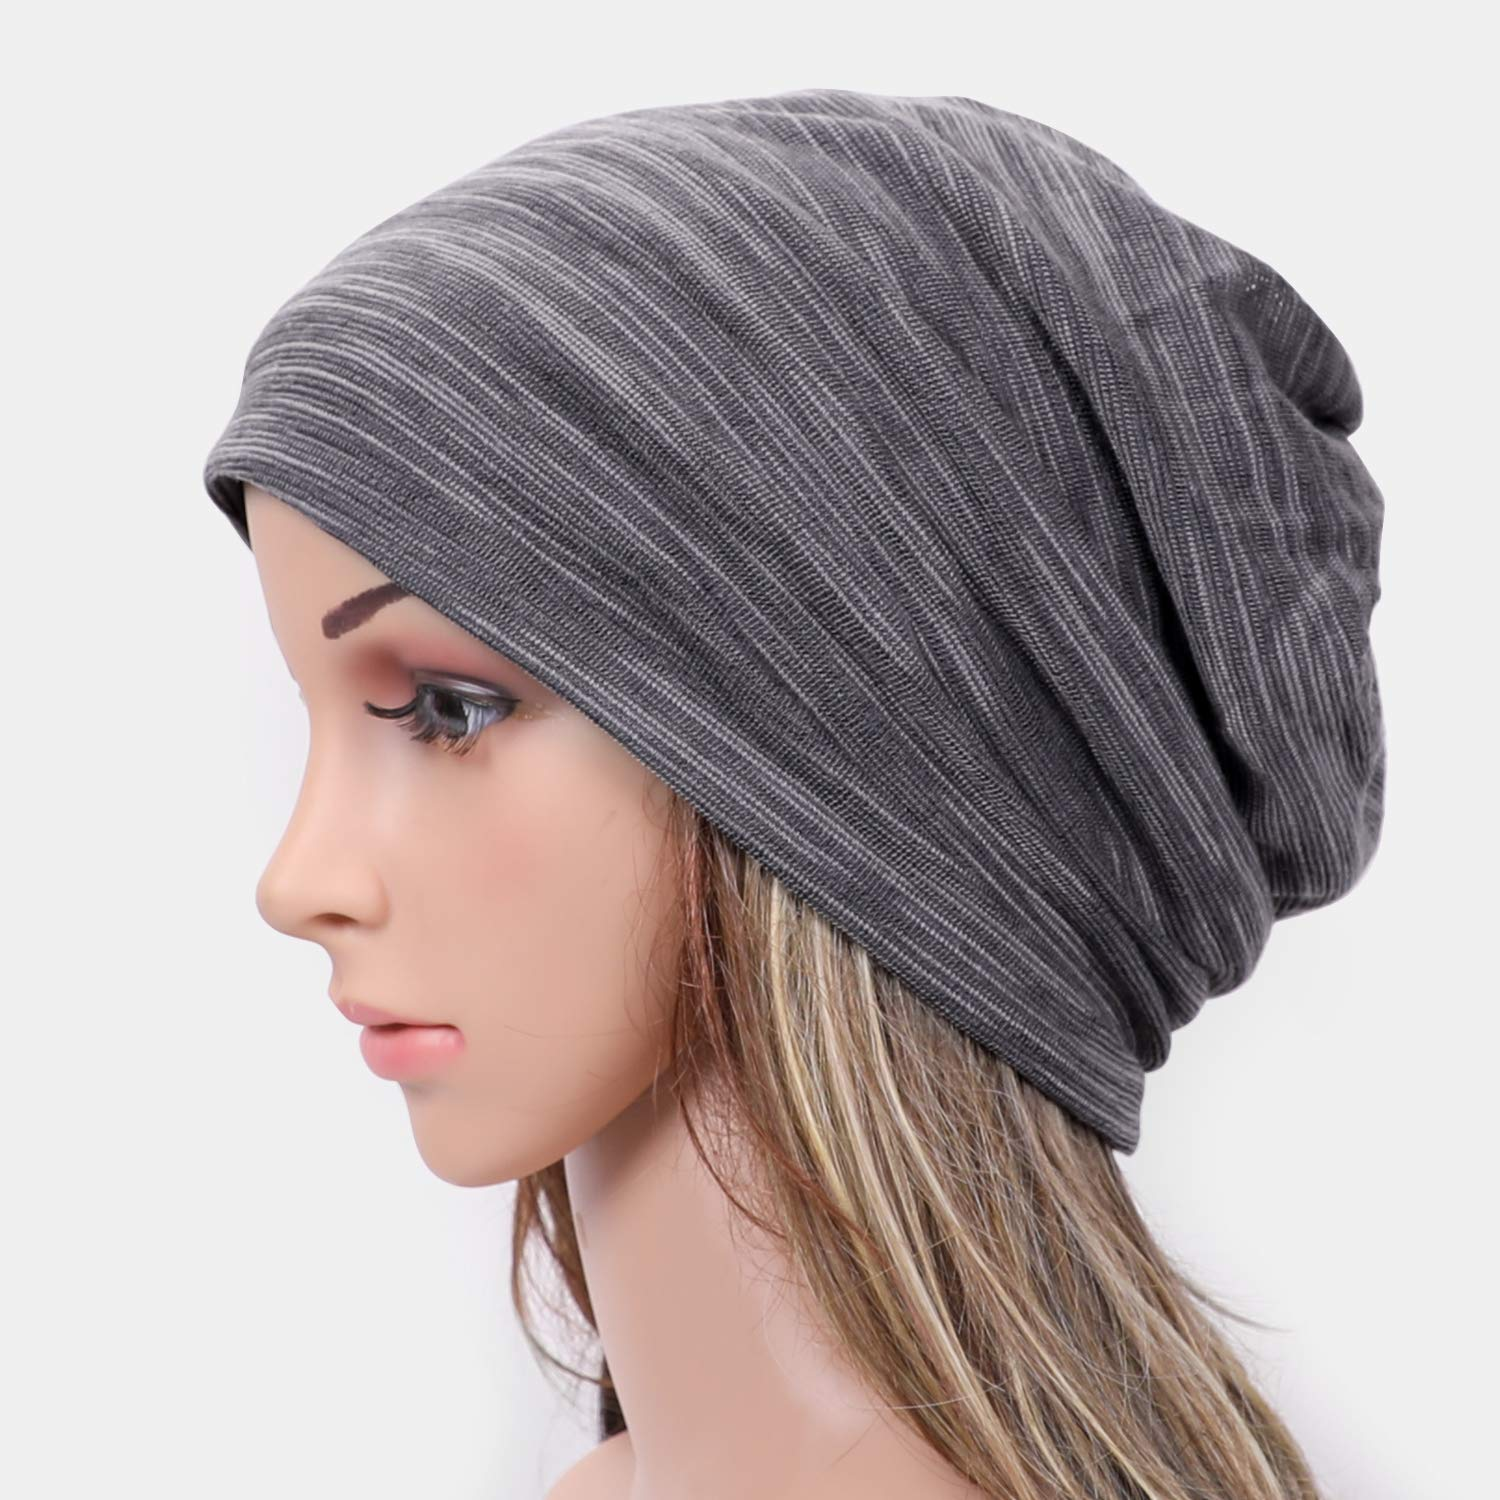 EtsyEase Soft Cotton Beanie Hat Sleep Cap - Fashion Slouchy Knit Beanie Cap for Men and Women (Grey)